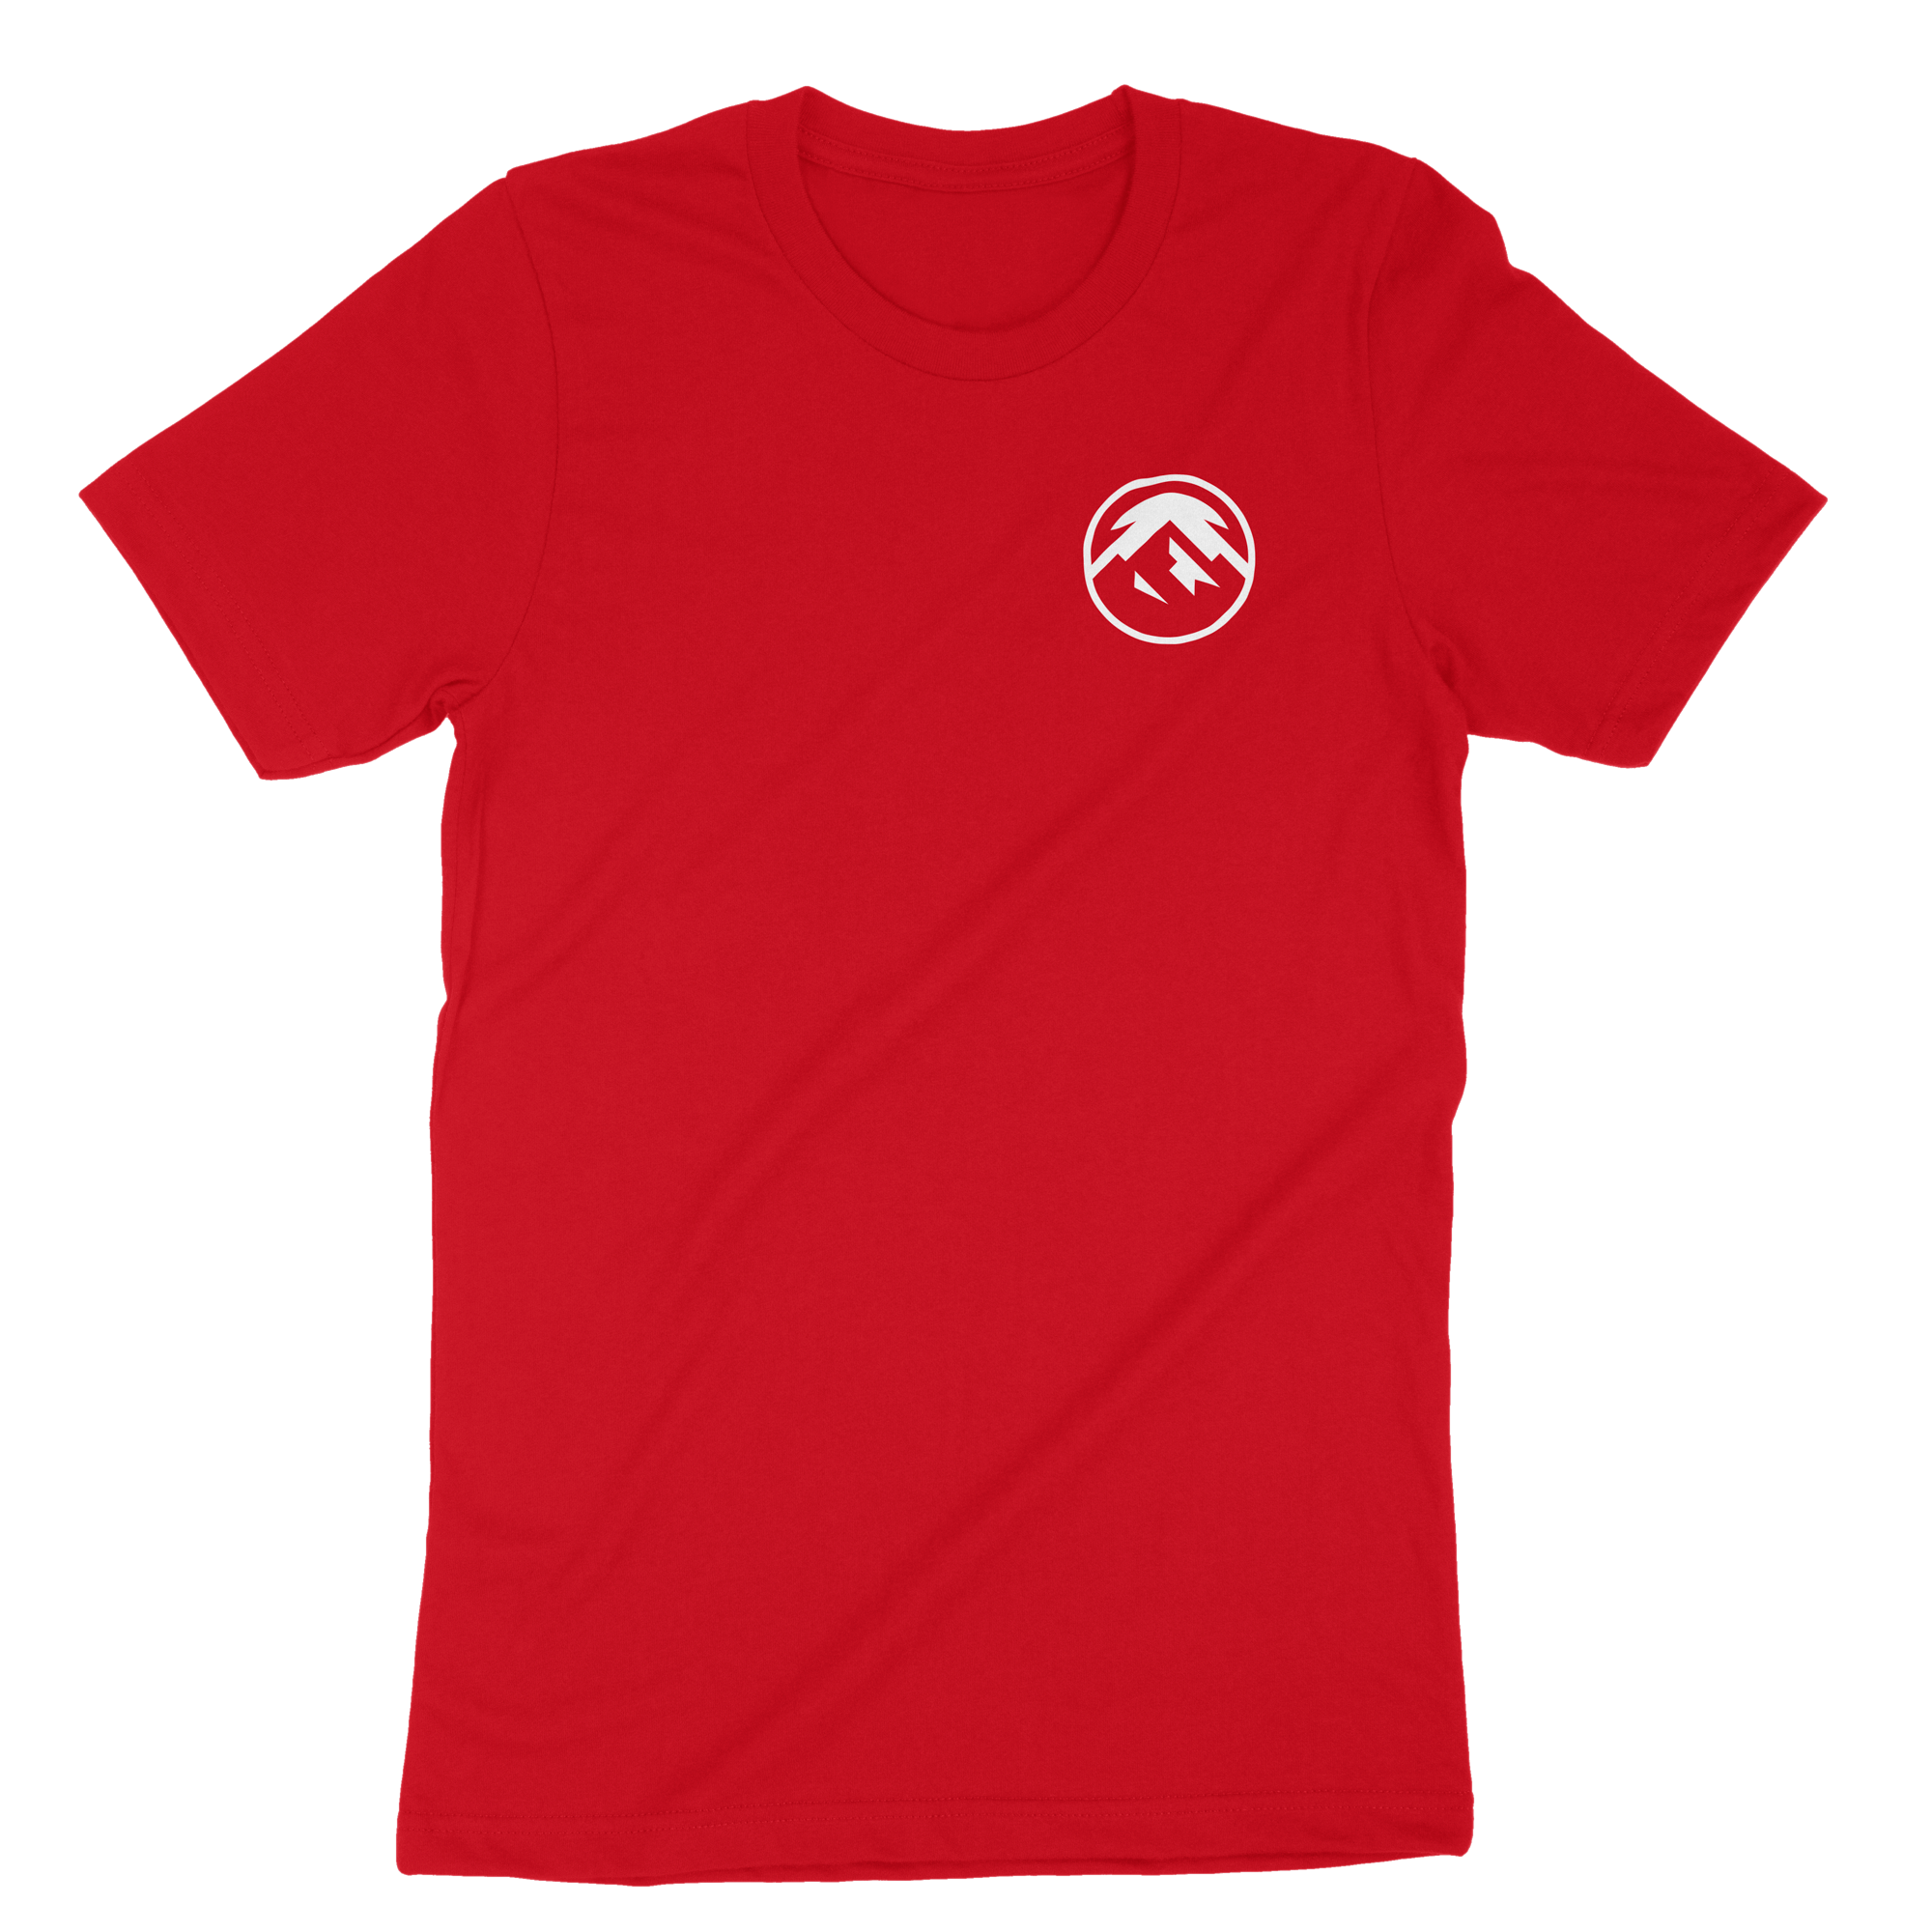 Elevate Defined T-Shirt